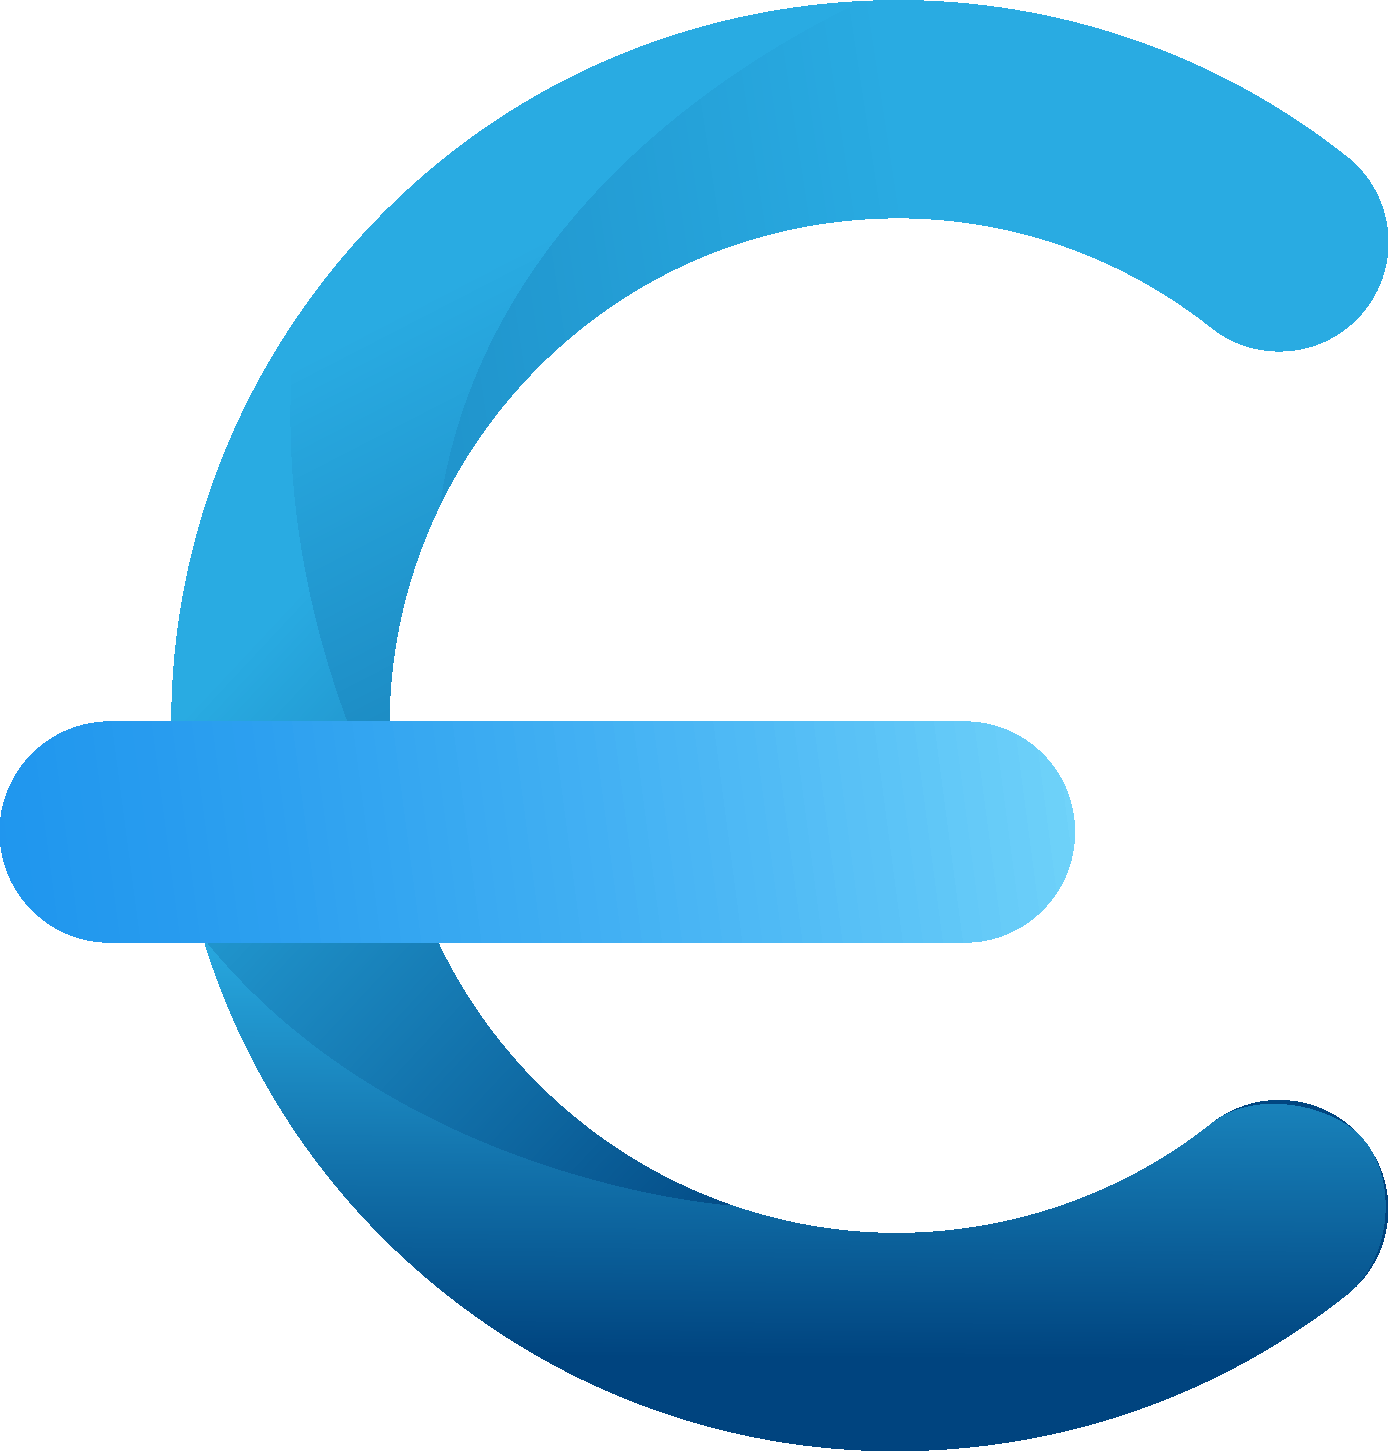 excelym icon